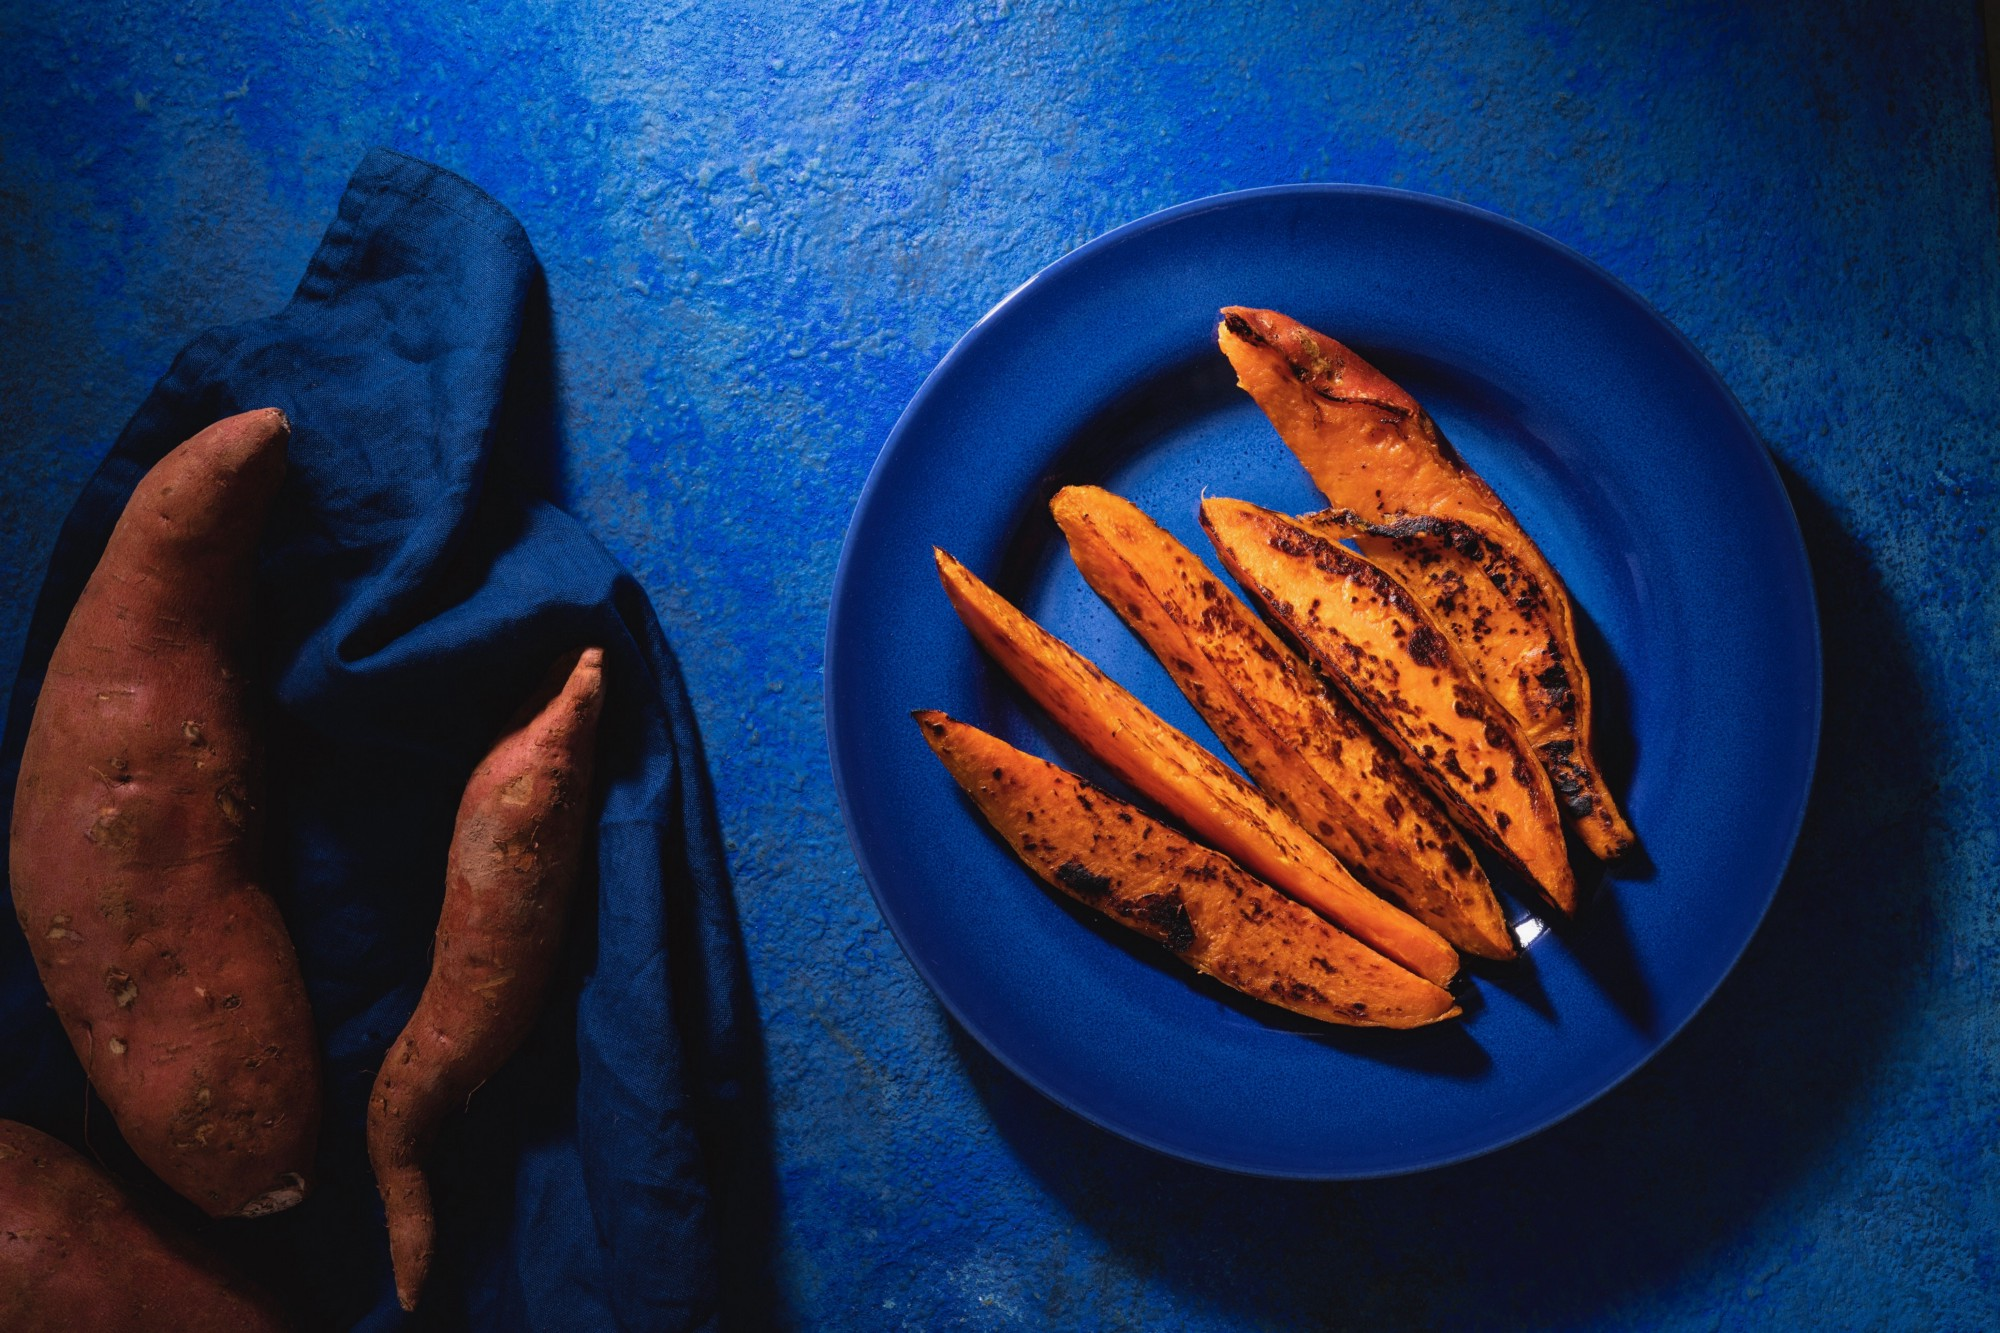 Cooked sweet potatoes on a blue plate